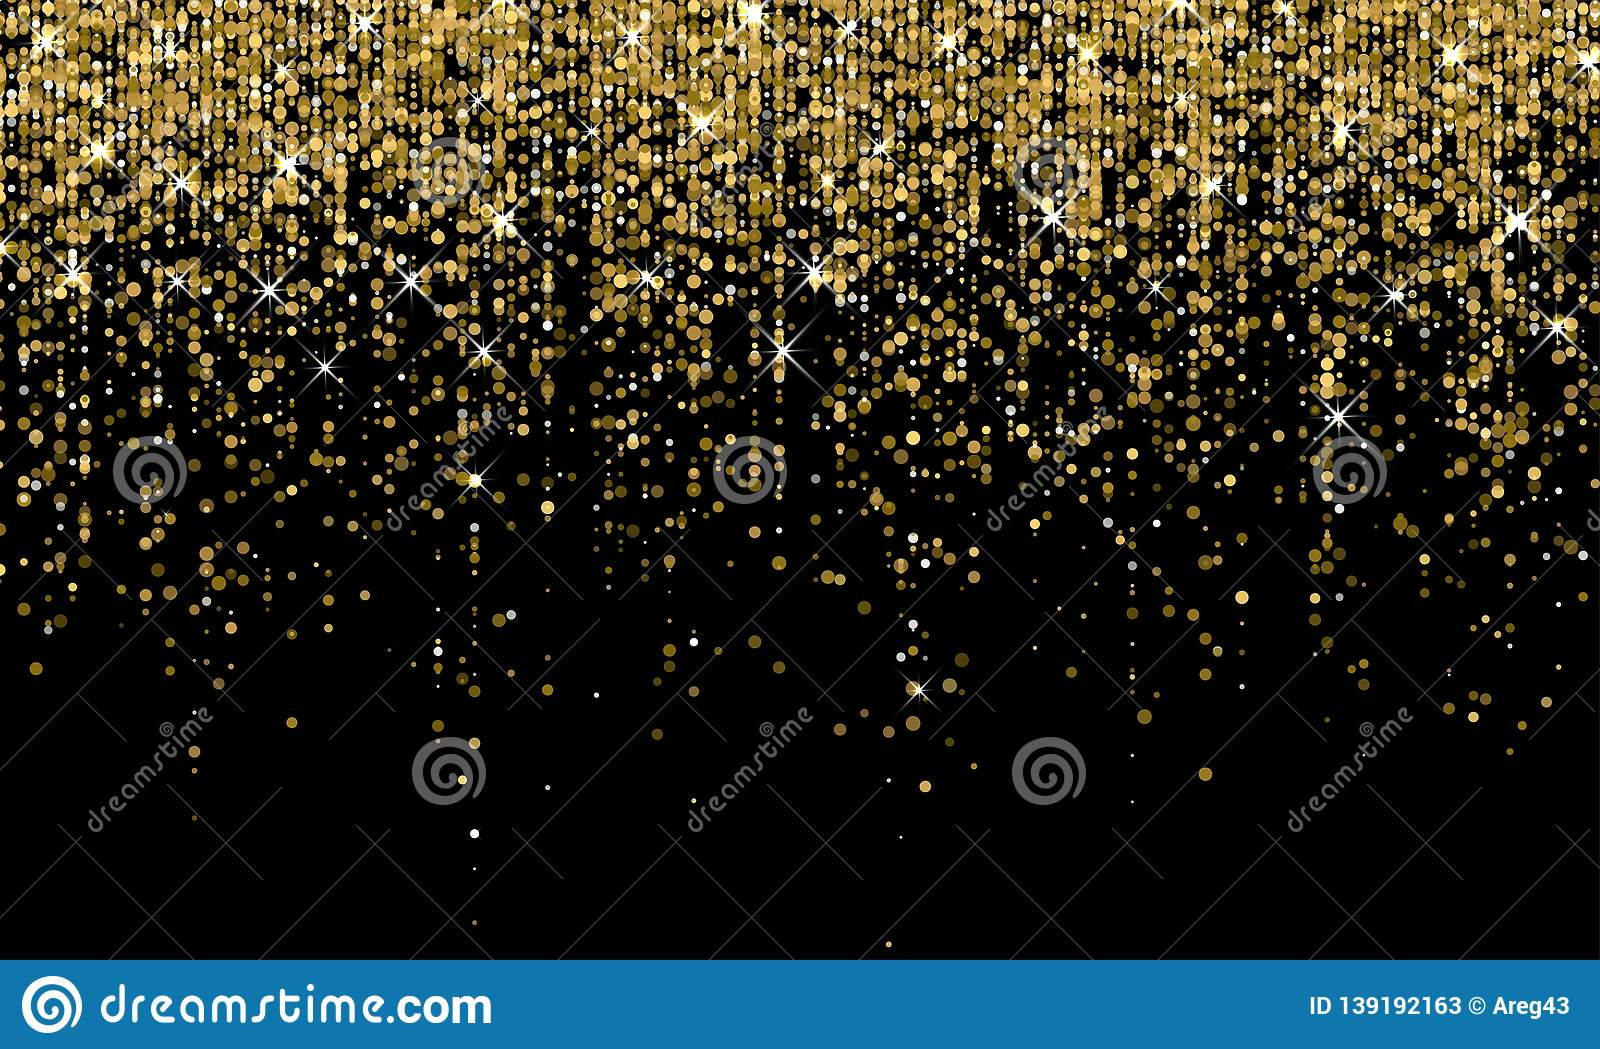 Golden Confetti Falling On Sparkling Gold Glitter Background. Vector  Carnival Party Golden Confetti Glow On Black Background Stock Vector -  Illustration of decoration, holiday: 139192163